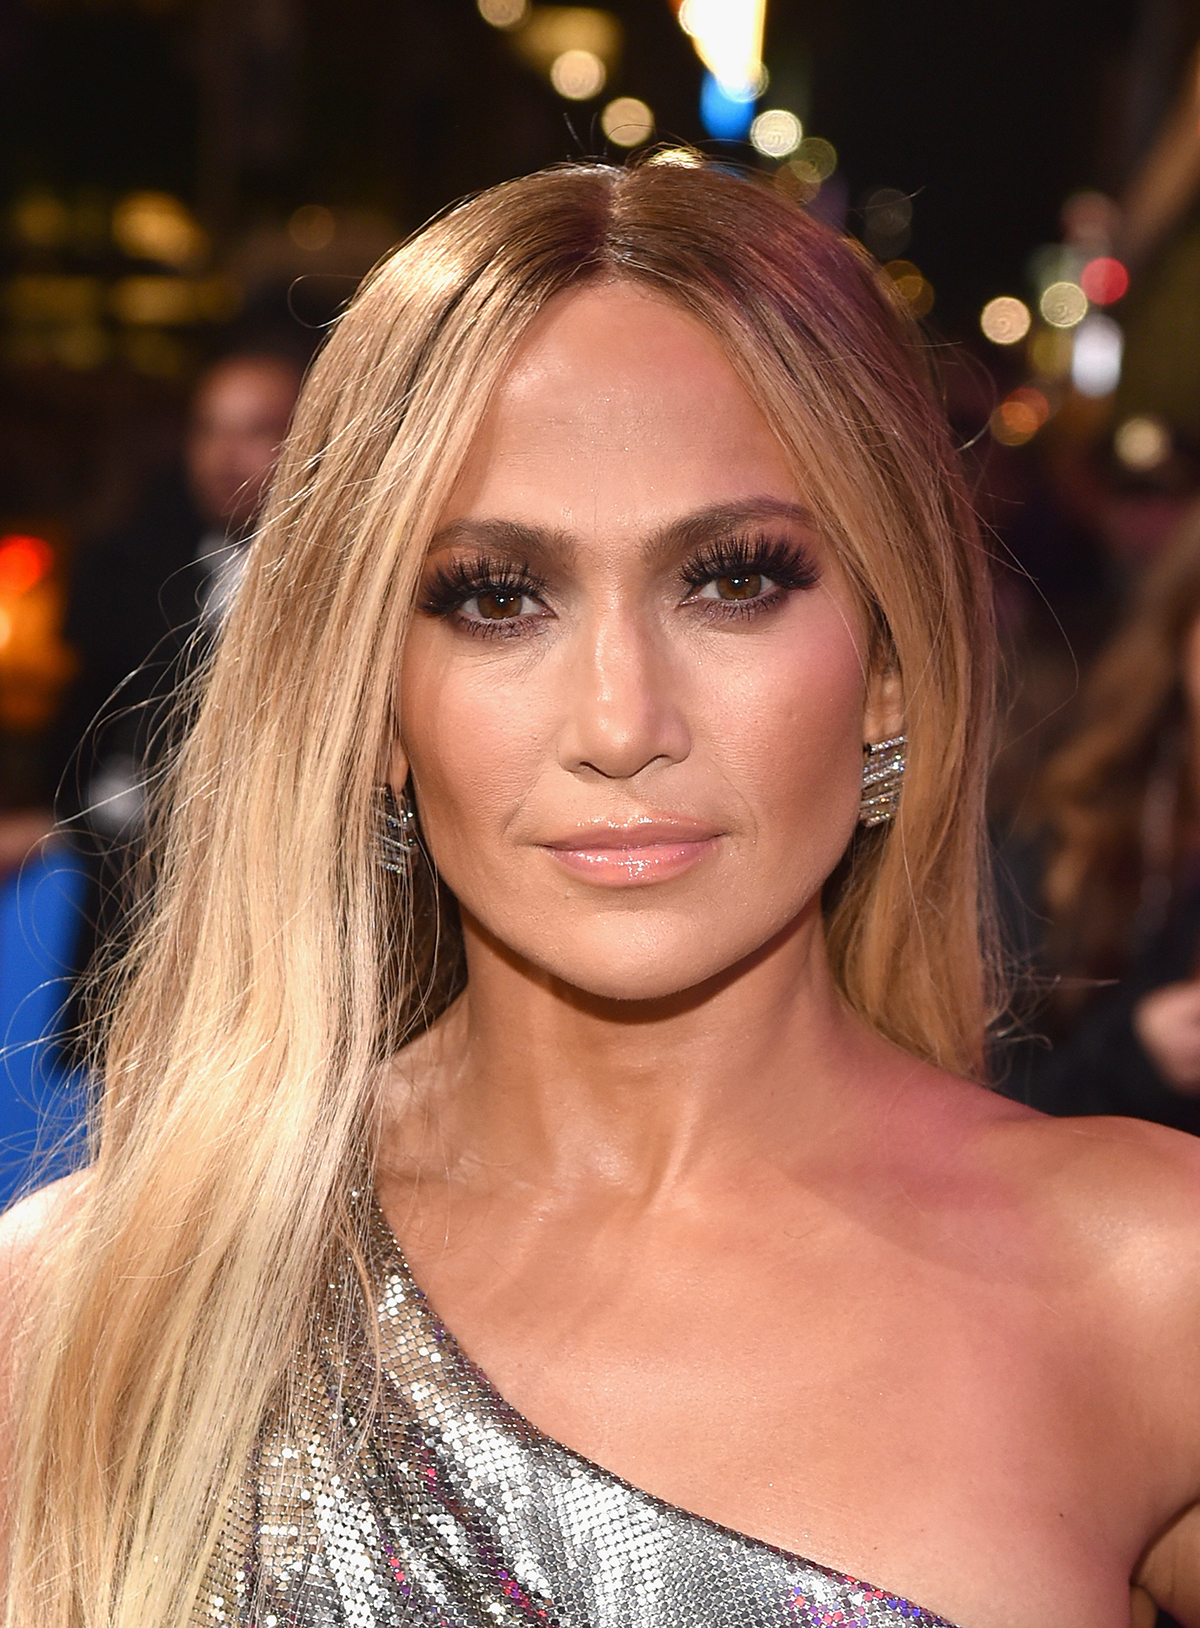 J.Lo Glowed in a Makeup-Free Selfie After Bagging Hustlers Award